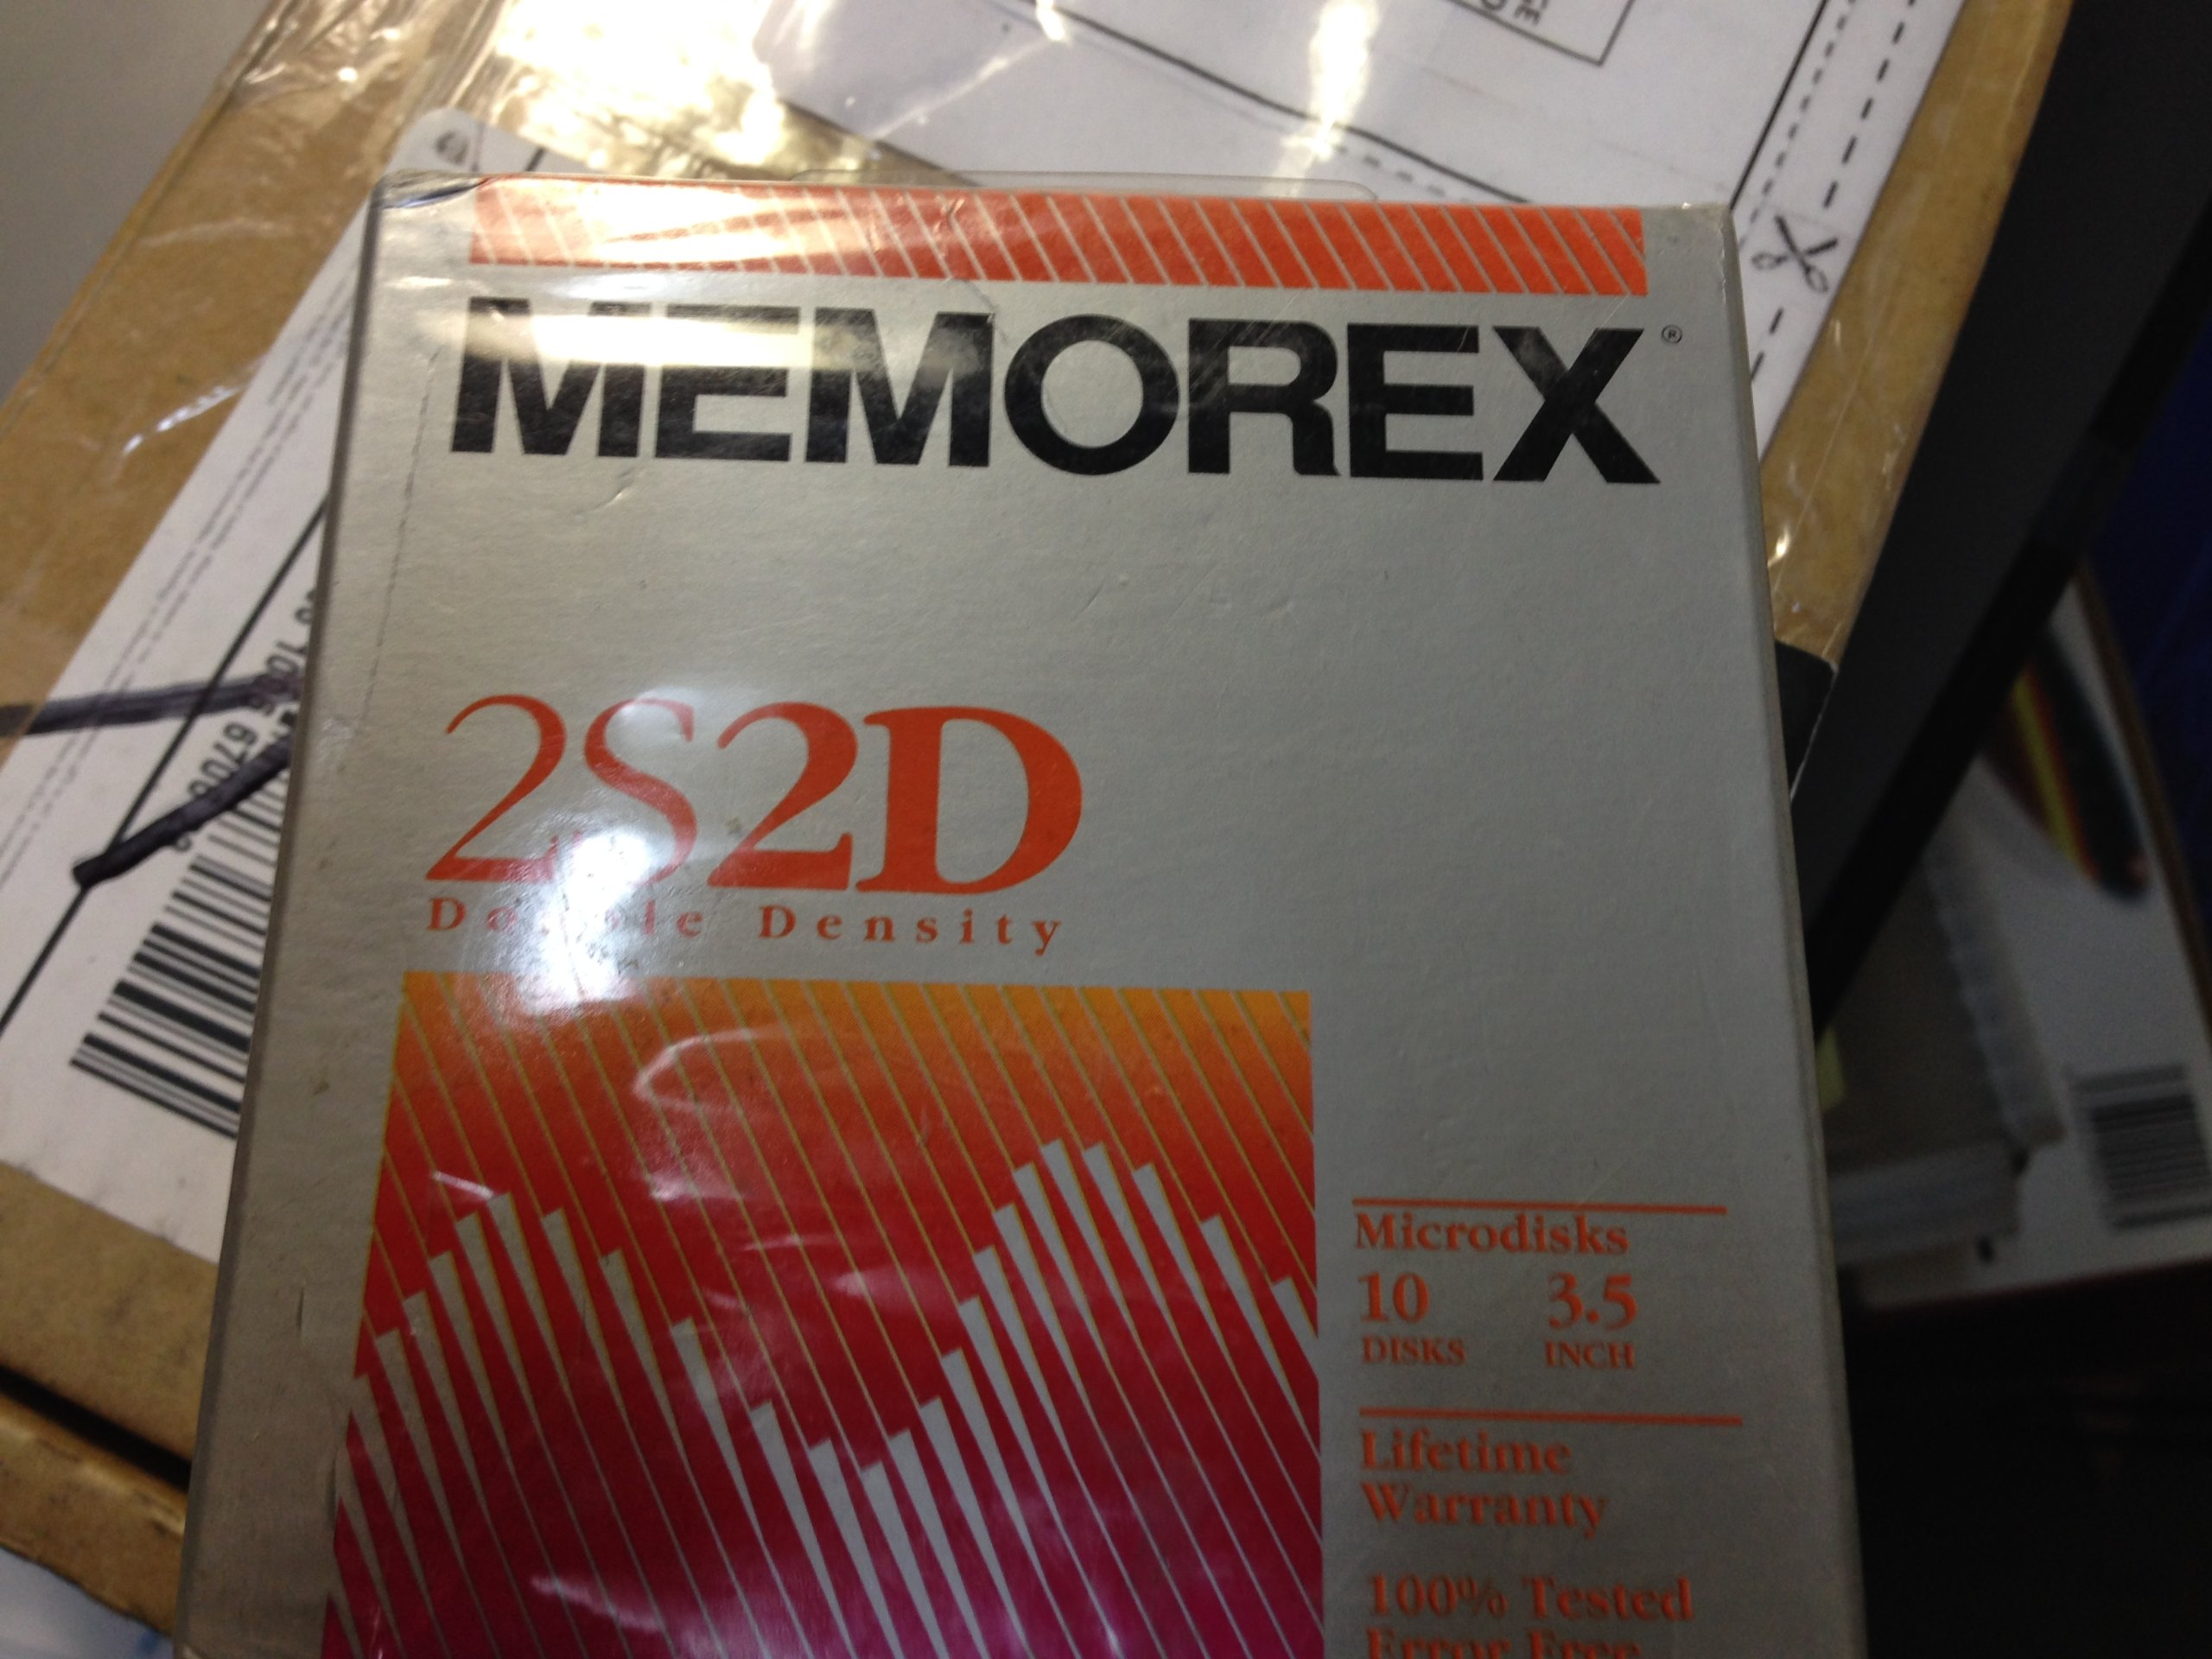 Memorex 10 Floppy Disks 3.5'' Double Density 2S2D - Lifetime Warranty from the manufacterer - PC Formatted Diskettes Disc Microdisks 3 1/2''